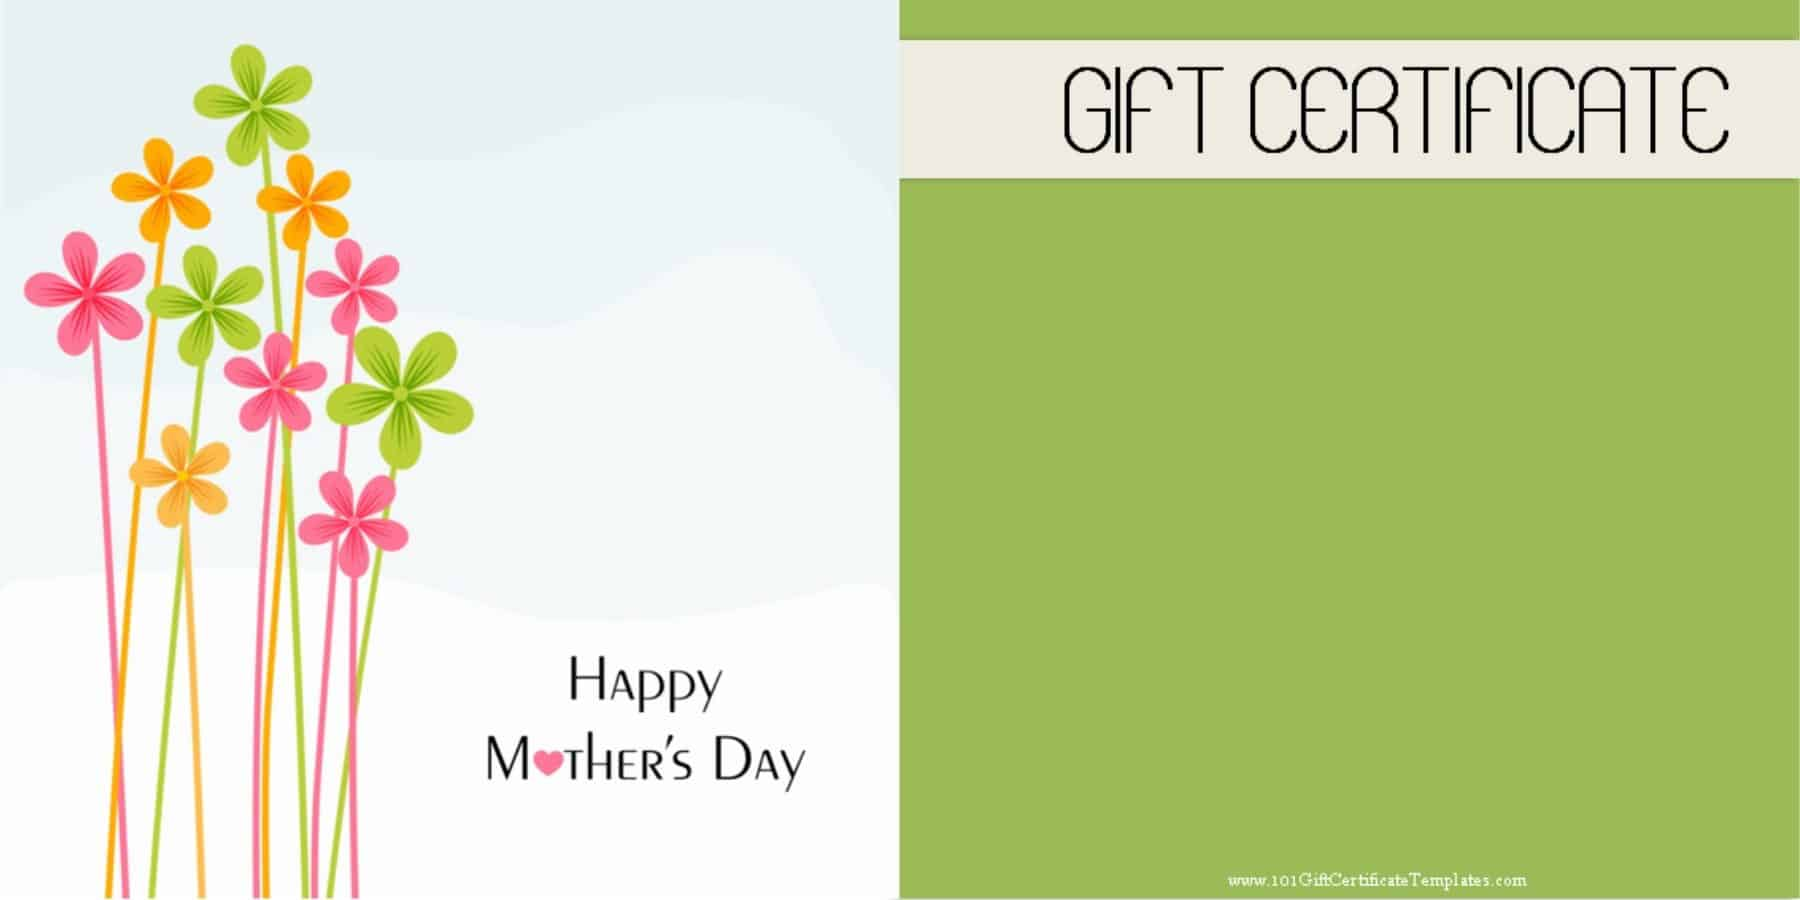 Mothers day gift certificate templates free printable mothers day gift certificate xflitez Choice Image